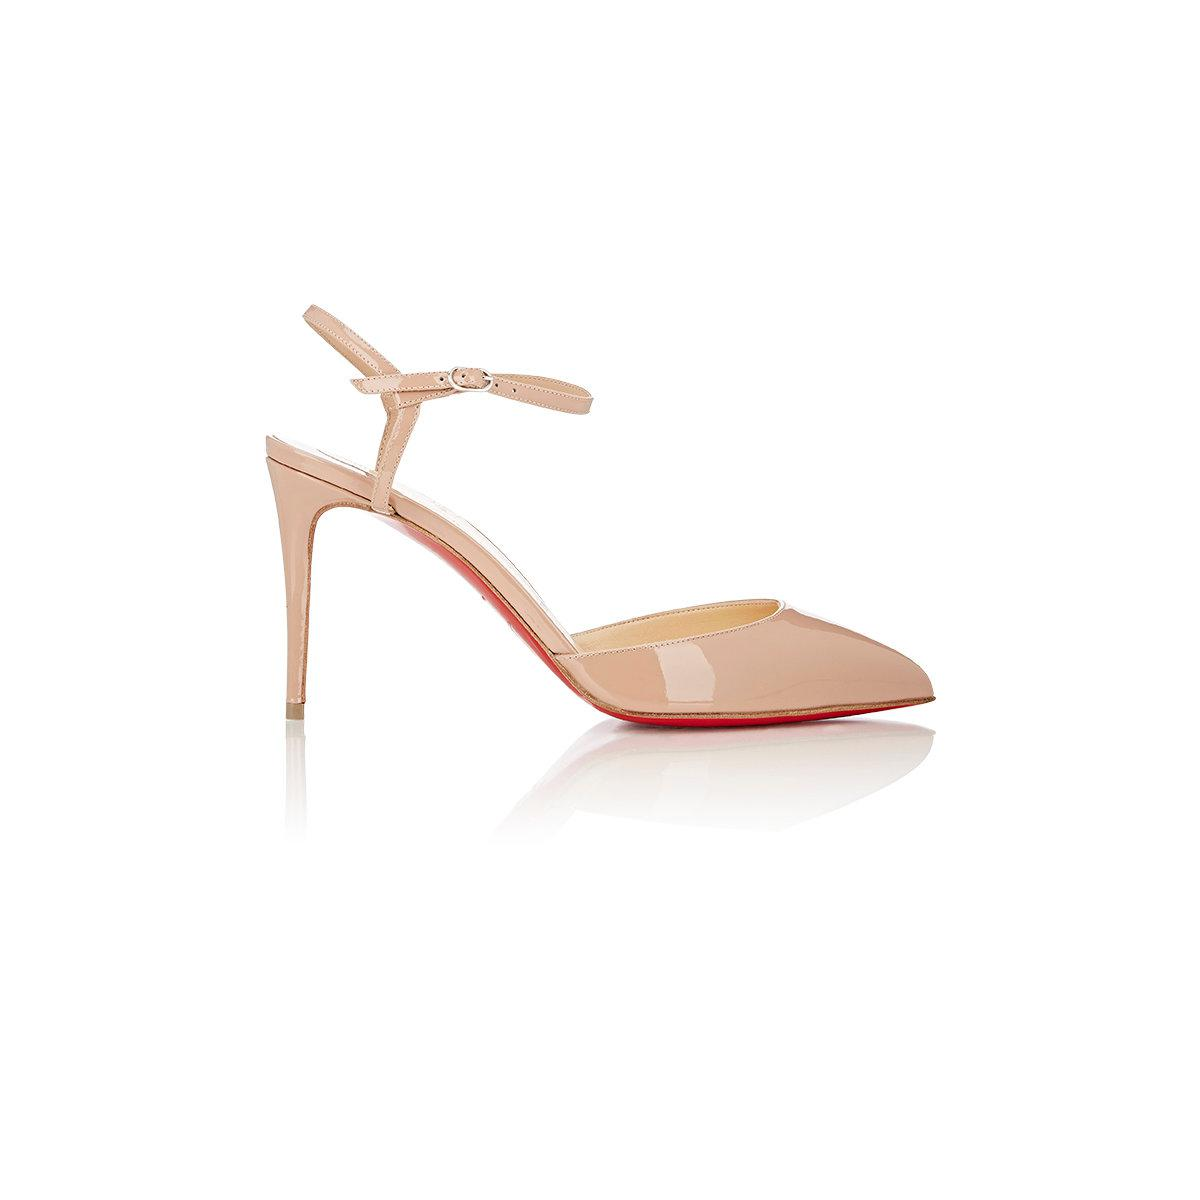 Womens Rivierina Ankle-Strap Pumps Christian Louboutin